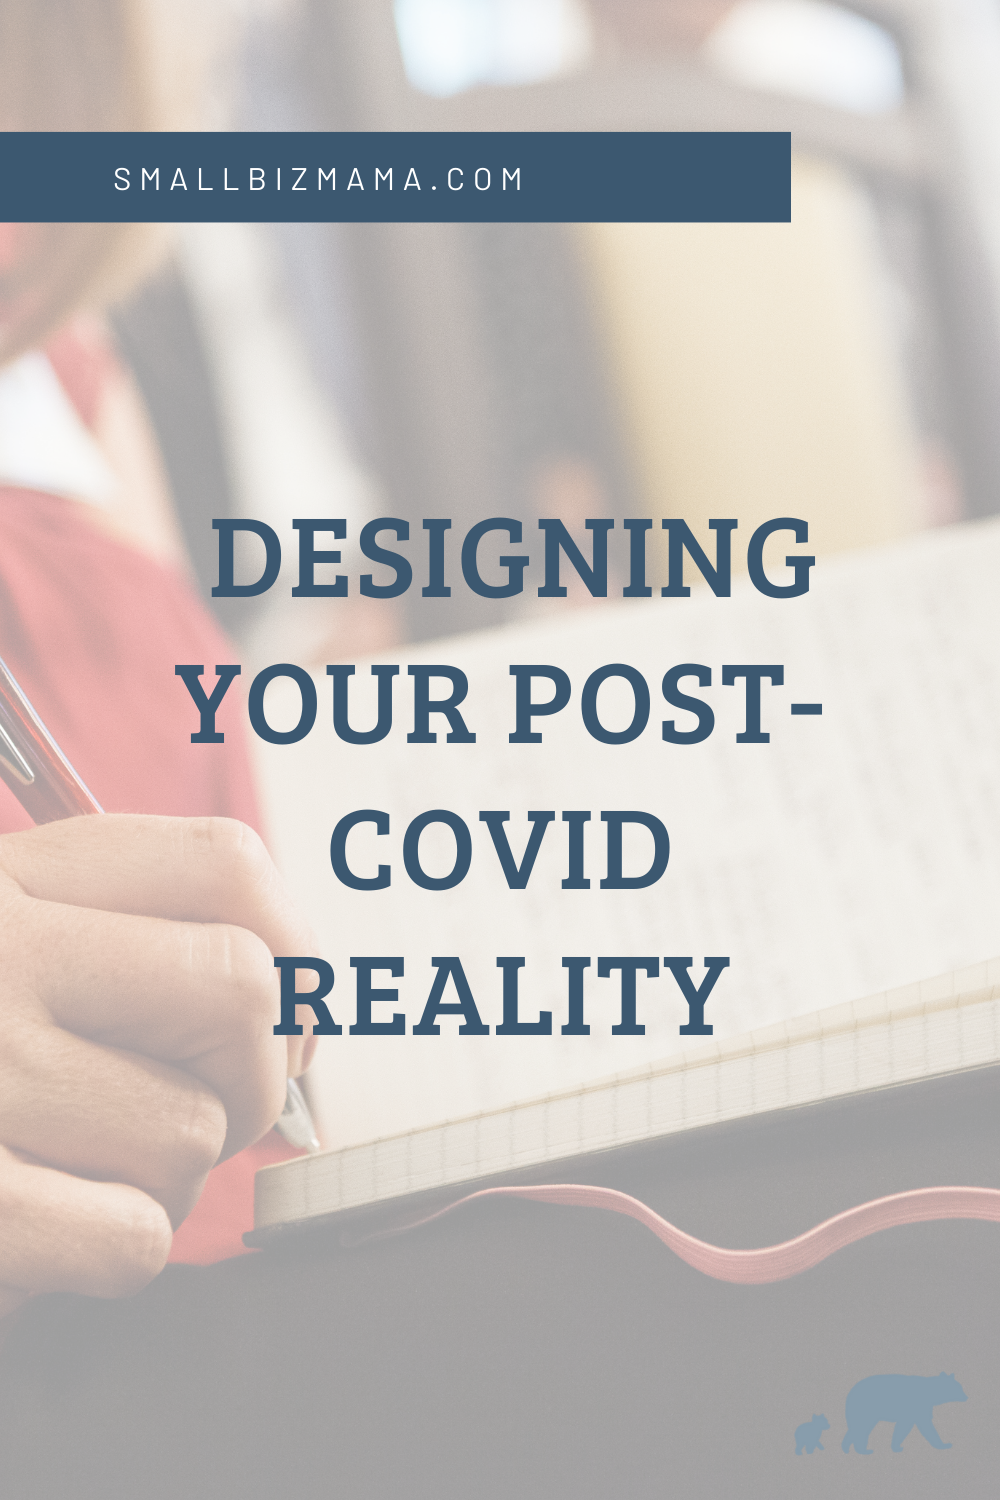 Designing your post Covid reality